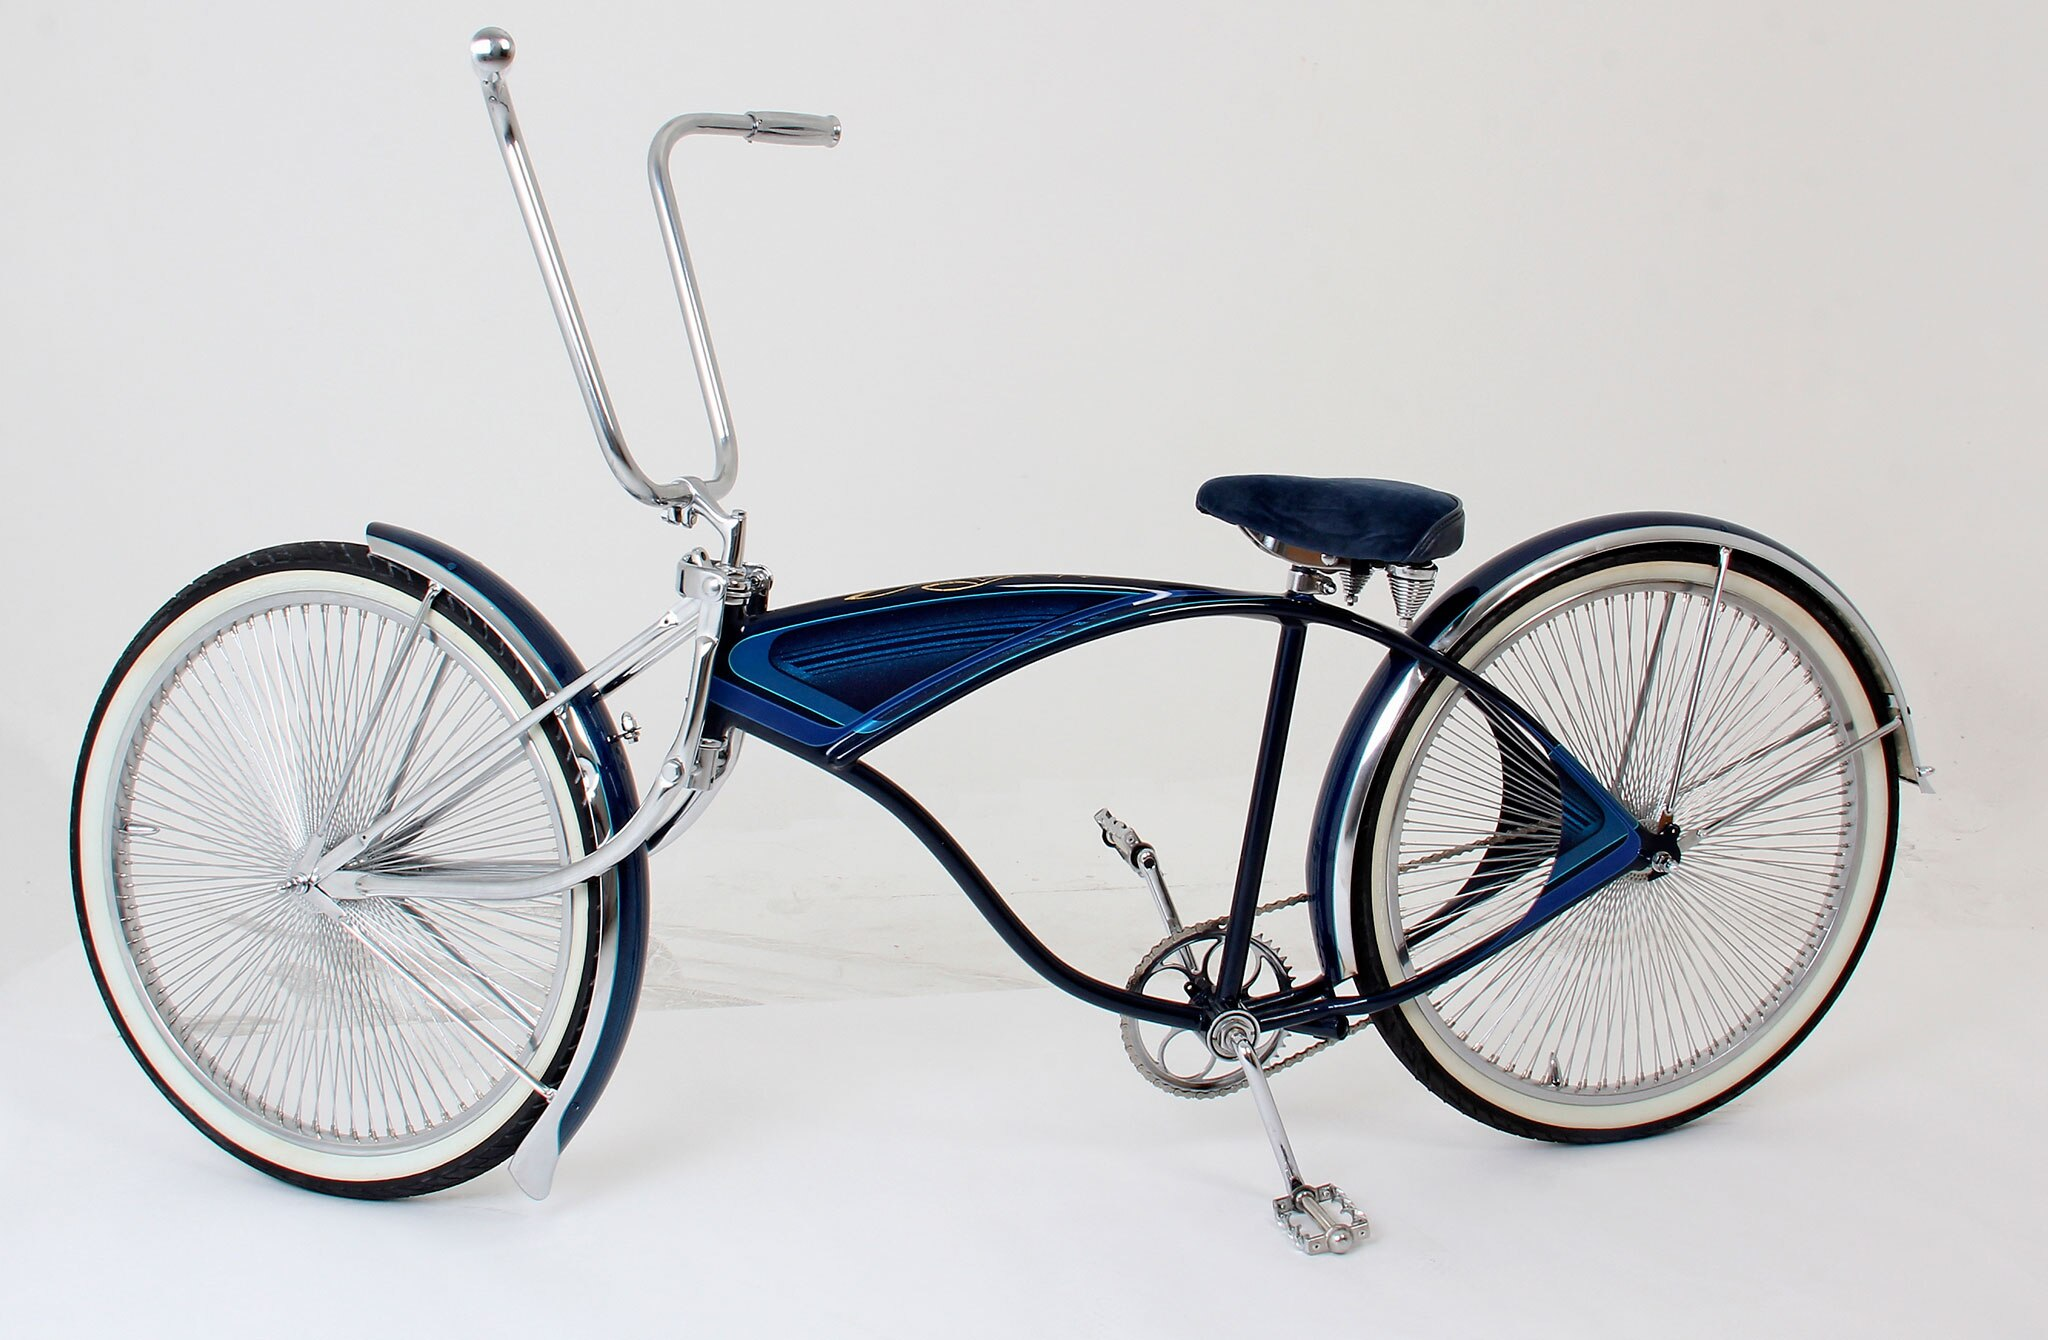 Lowrider Beach Cruiser Bikes Pictures To Pin On Pinterest  PinsDaddy